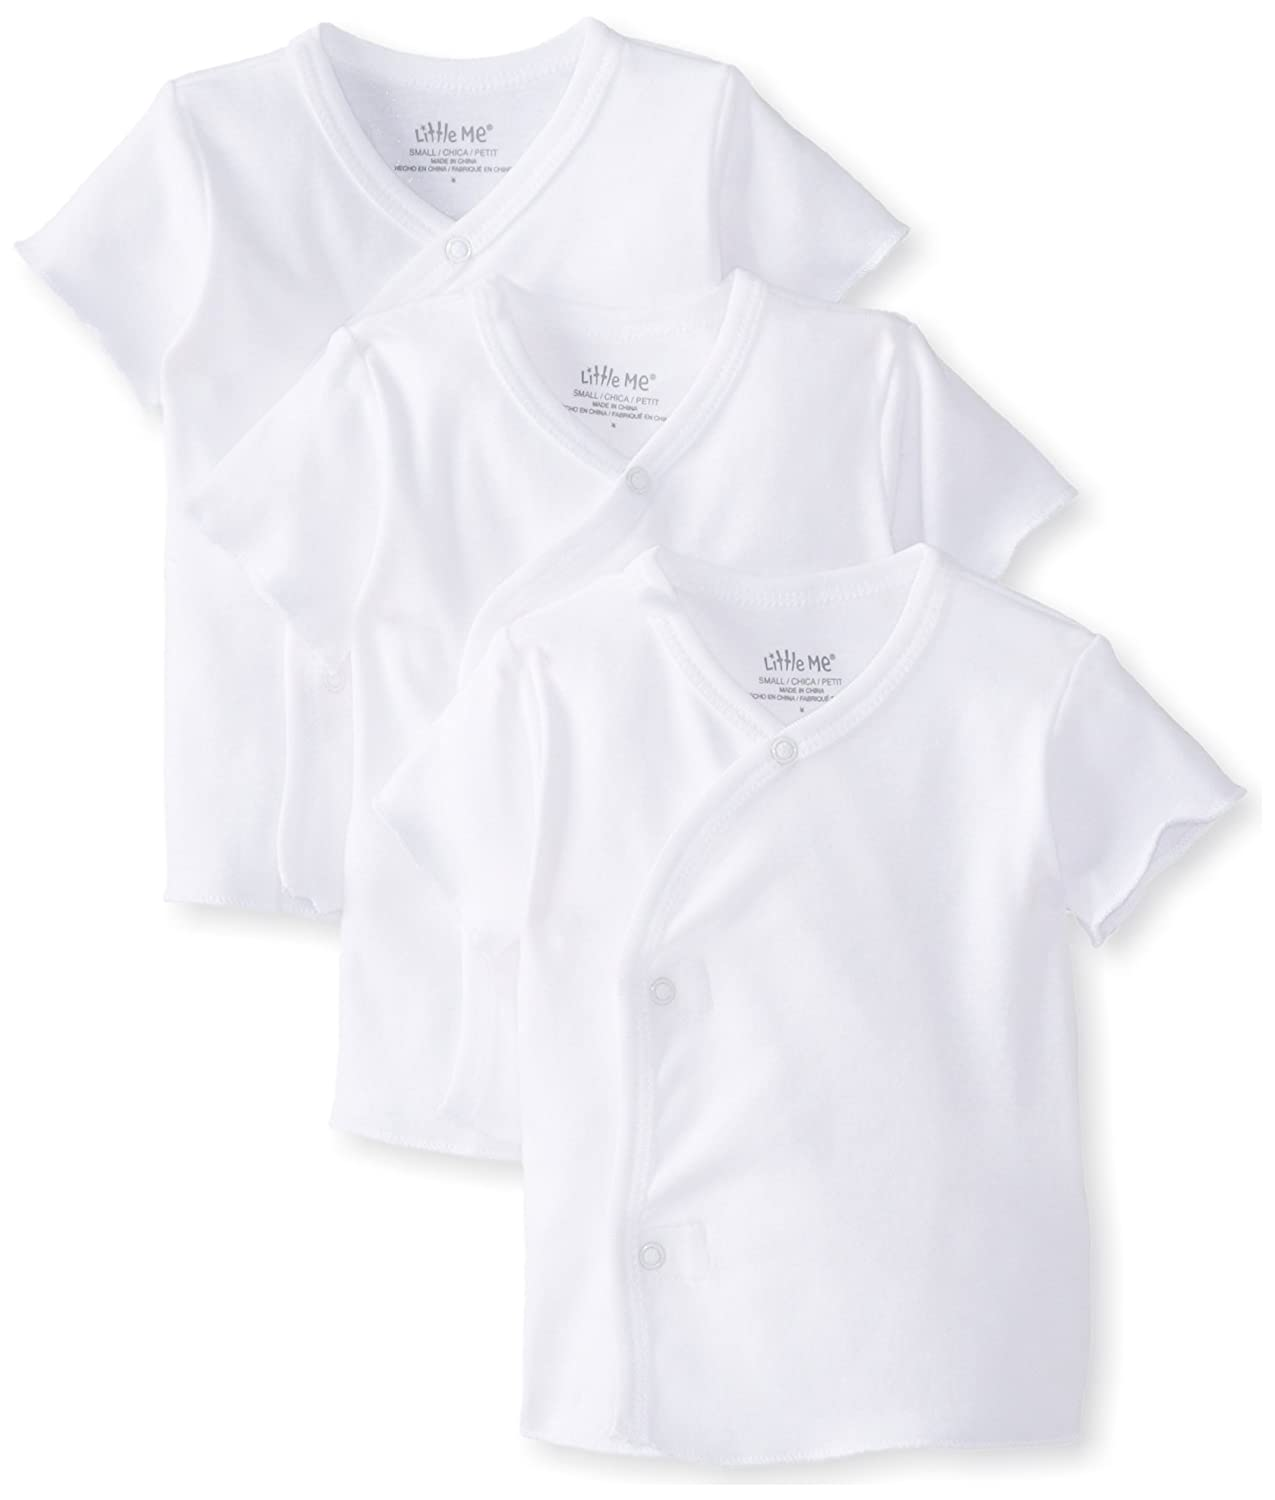 Little Me Unisex-Baby Newborn Snap Side Tee Shirt 3 Pack Little Me Baby 2075150B